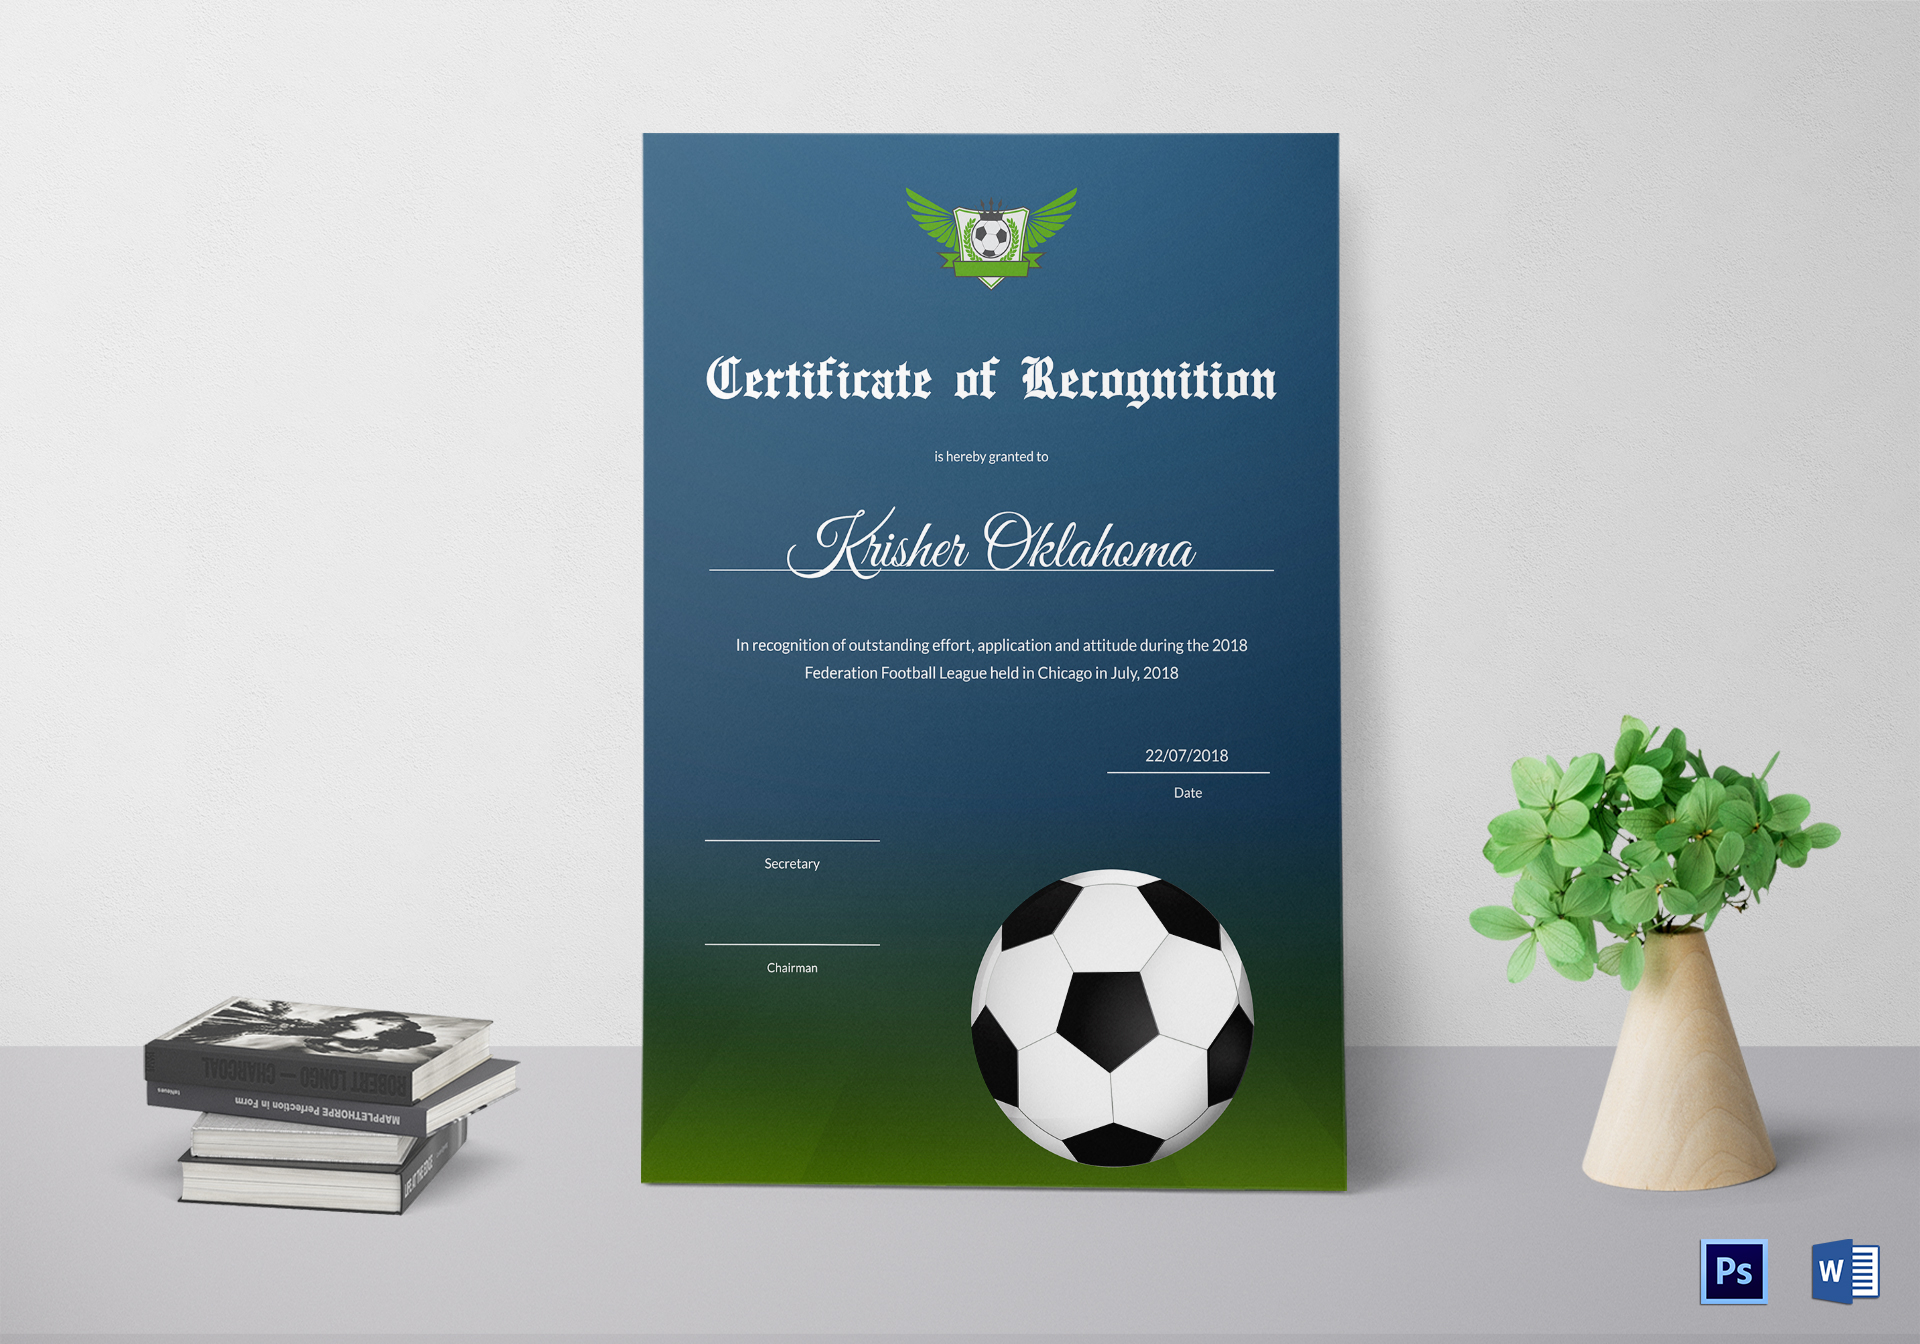 Federation Football League Recognition Certificate Design Template